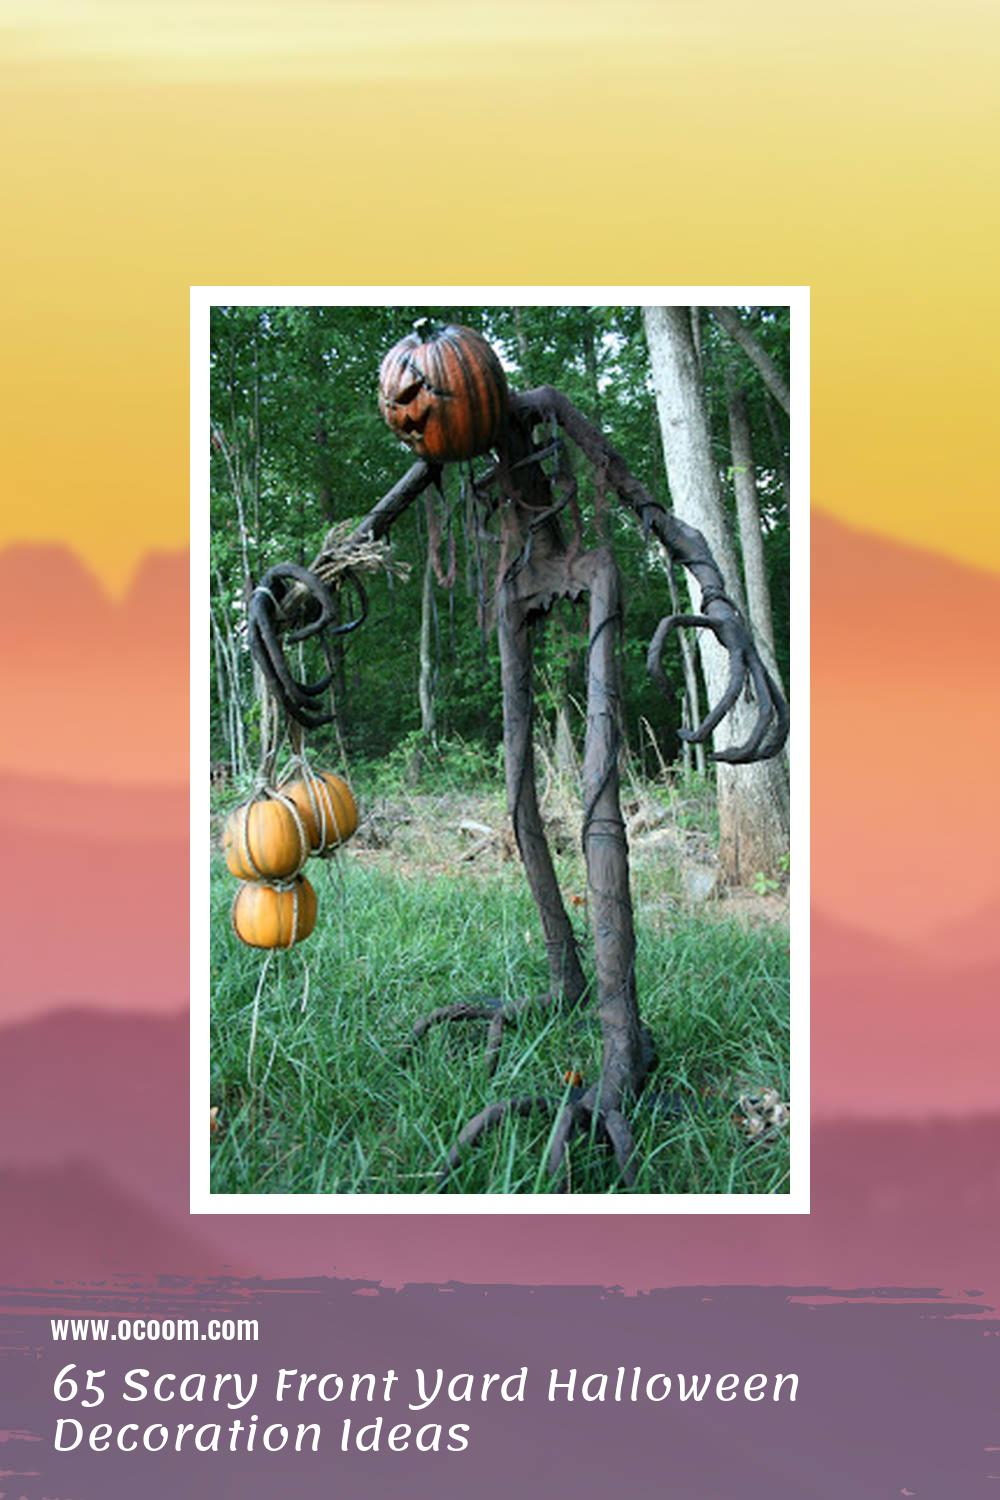 65 Scary Front Yard Halloween Decoration Ideas 19